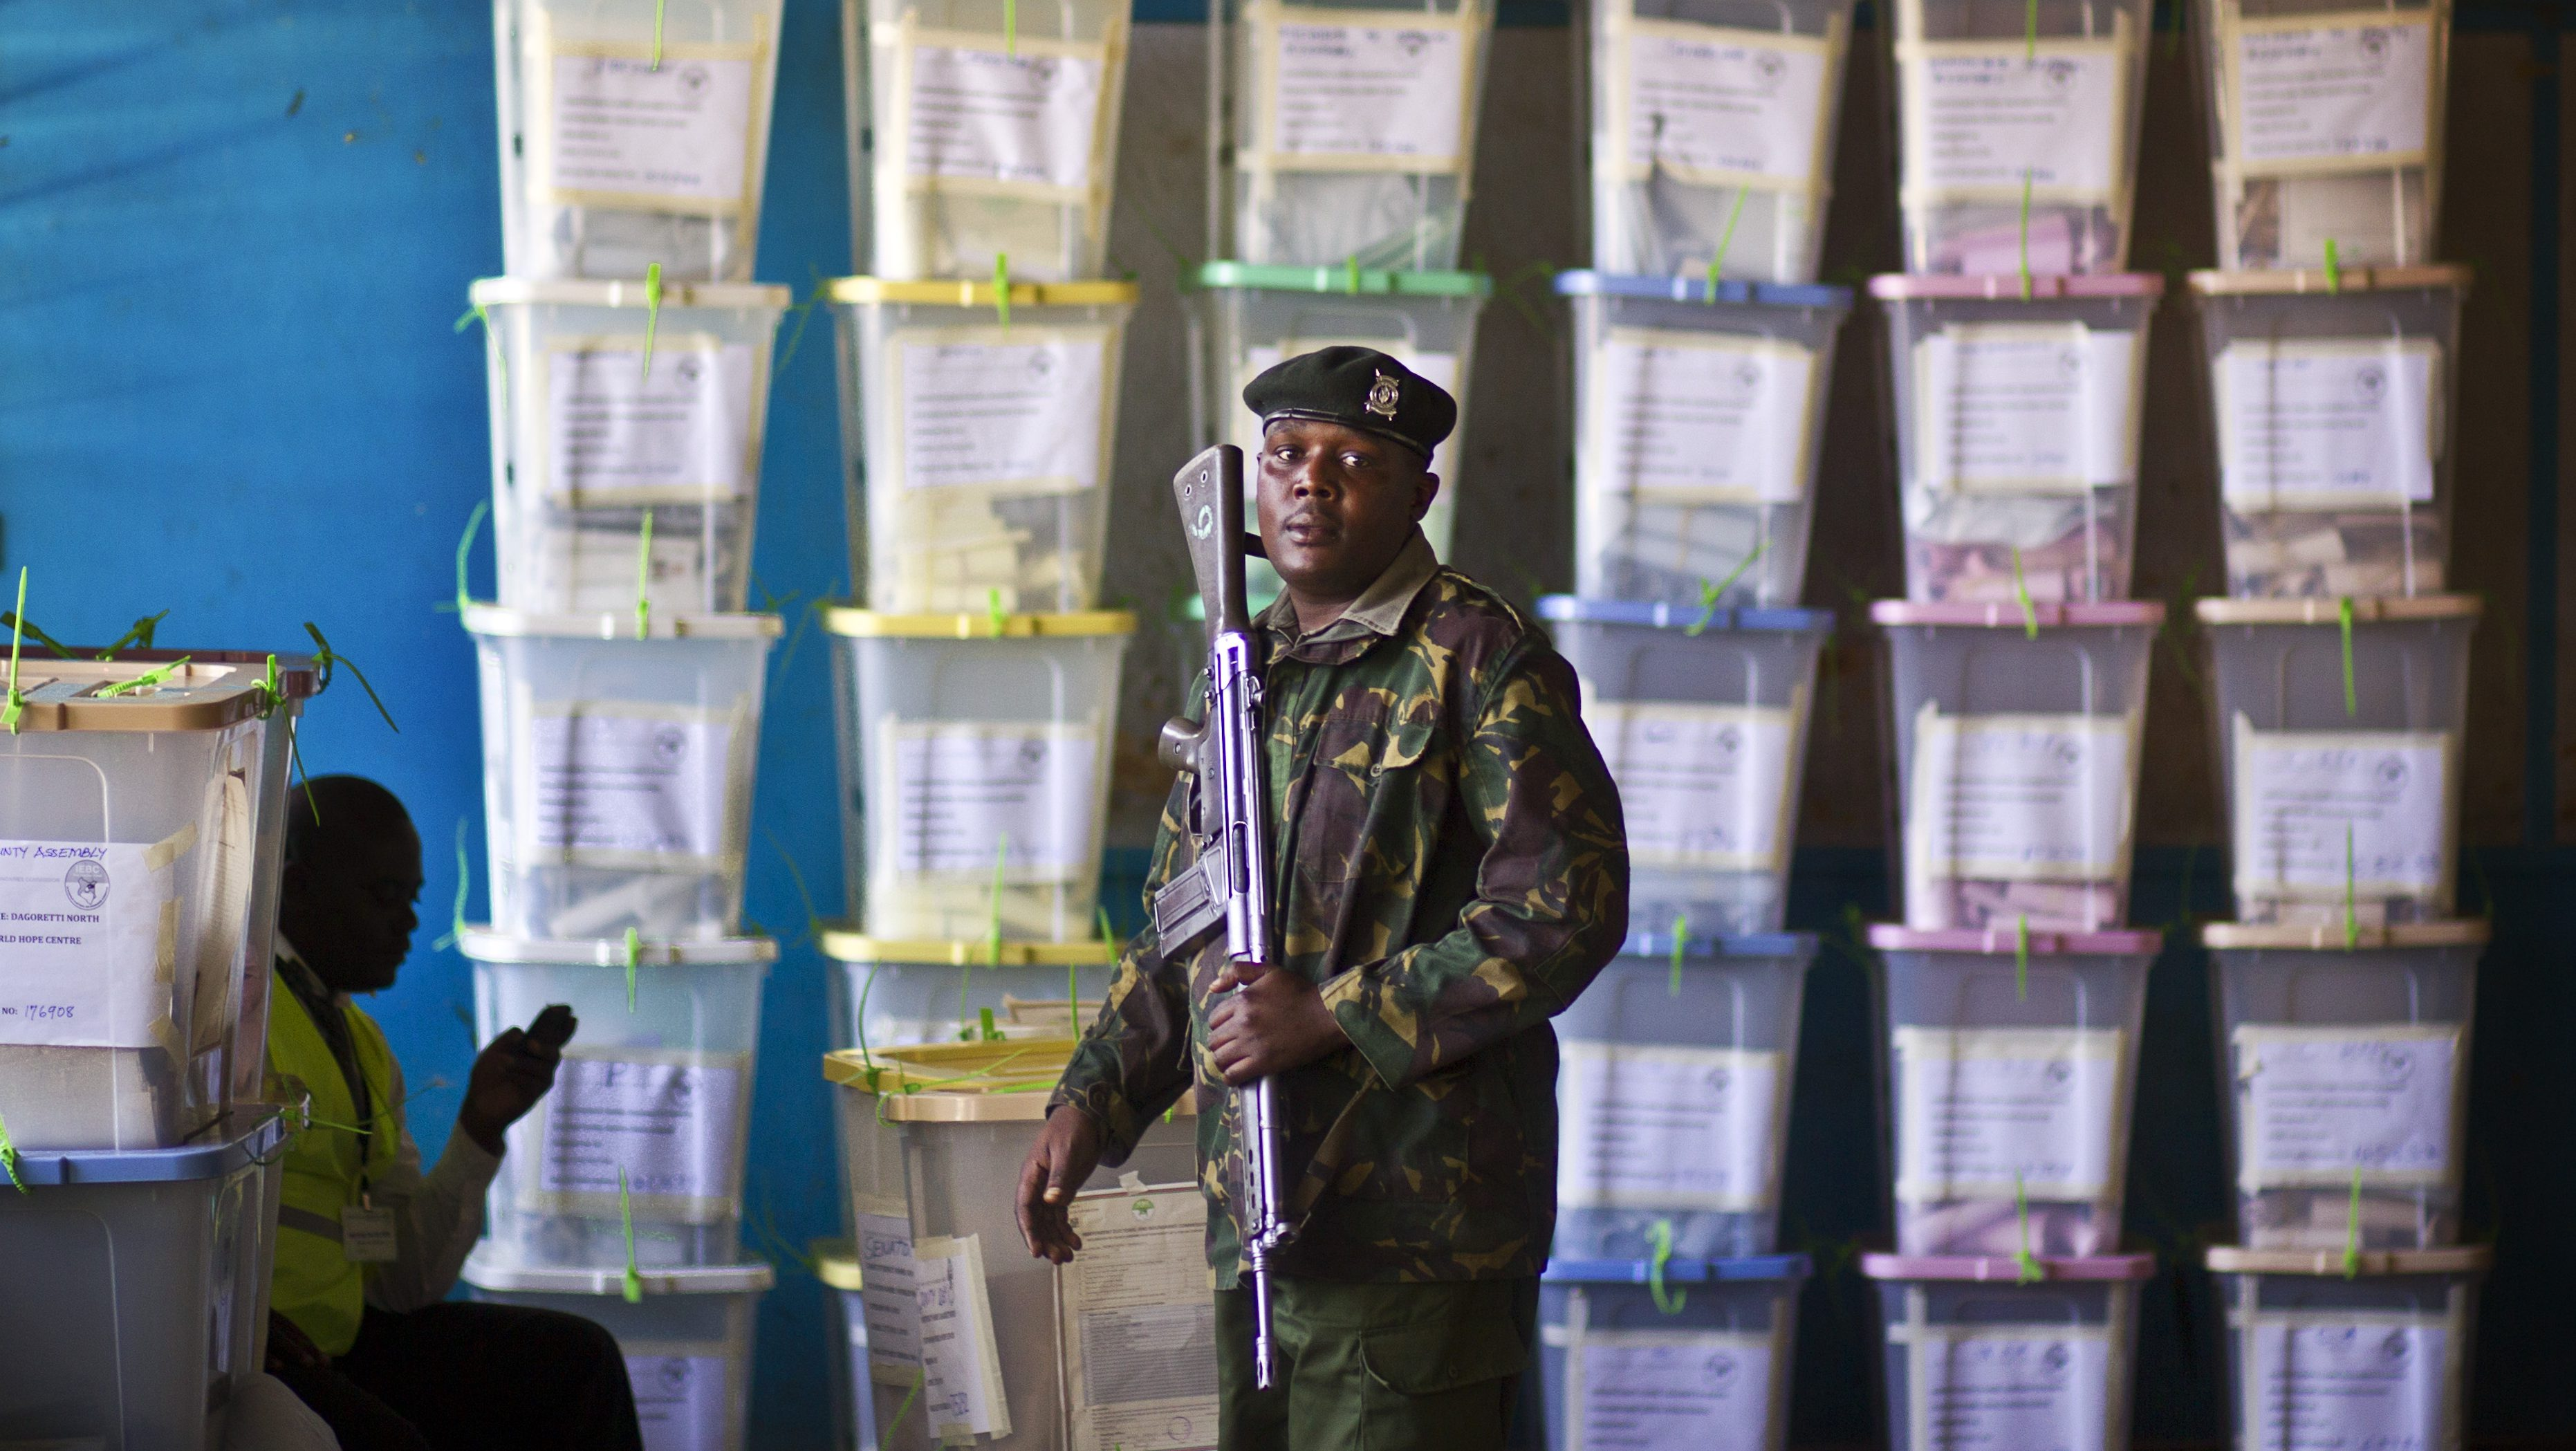 An officer of the prisons service helps to carry ballot boxes for stacking after their results were tallied, at a vote tallying center in Nairobi, Kenya Tuesday, March 5, 2013. With about a third of ballots counted provisional results showed Deputy Prime Minister Uhuru Kenyatta, who faces charges at the International Criminal Court, taking an early lead Tuesday as votes were counted the day after the country's presidential election.